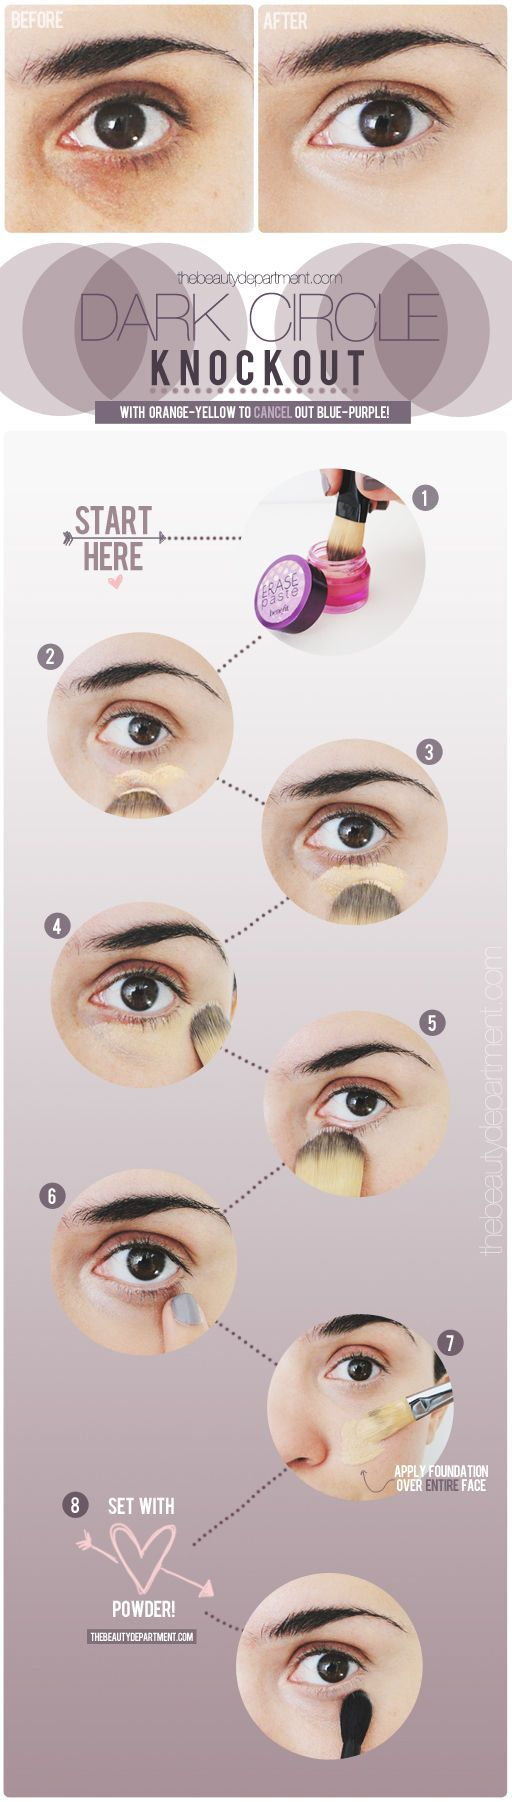 How to conceal dark circles under your eyes.